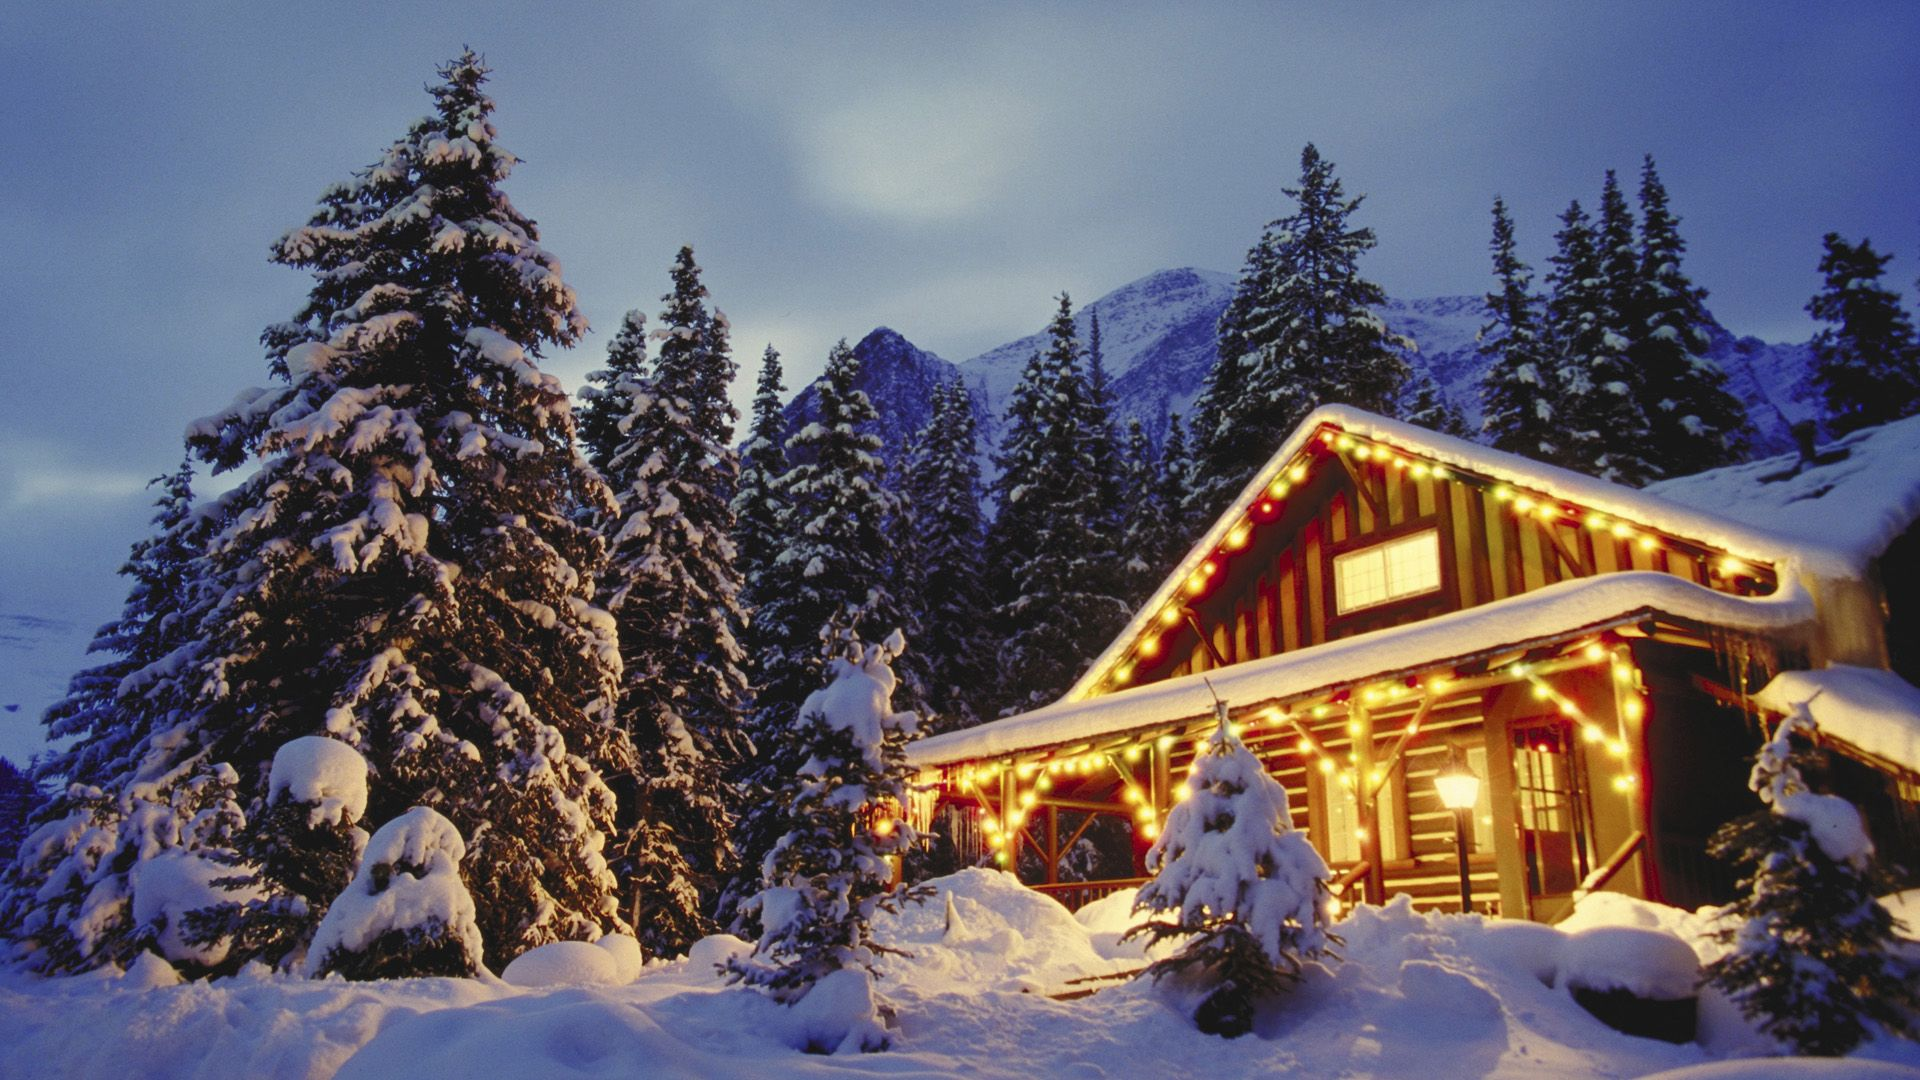 Frost Nature Frozen Cabins Wooden Trees Winter Cold Houses Nice Snow Evening Forest Slope Cottages Beautiful Winter Cabin Free Winter Wallpaper Winter Pictures